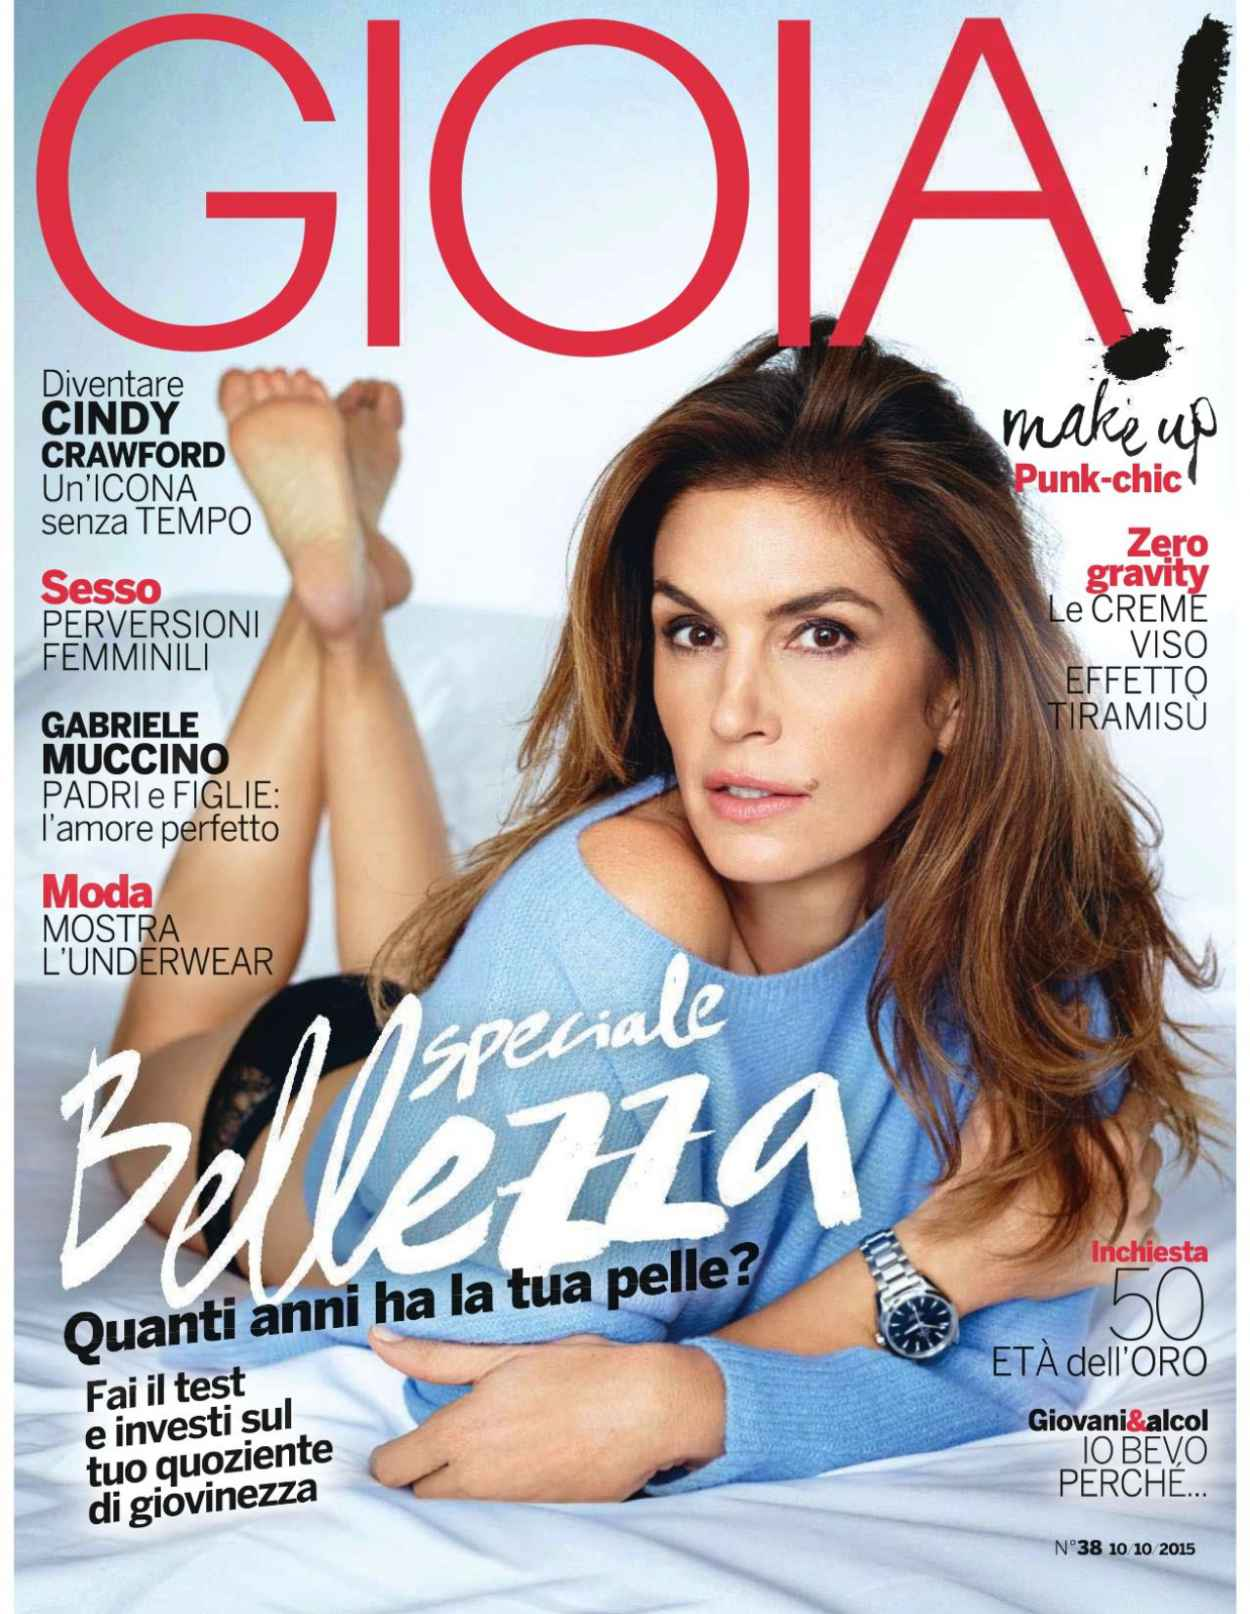 Cindy Crawford - Gioia Magazine October 2015-2